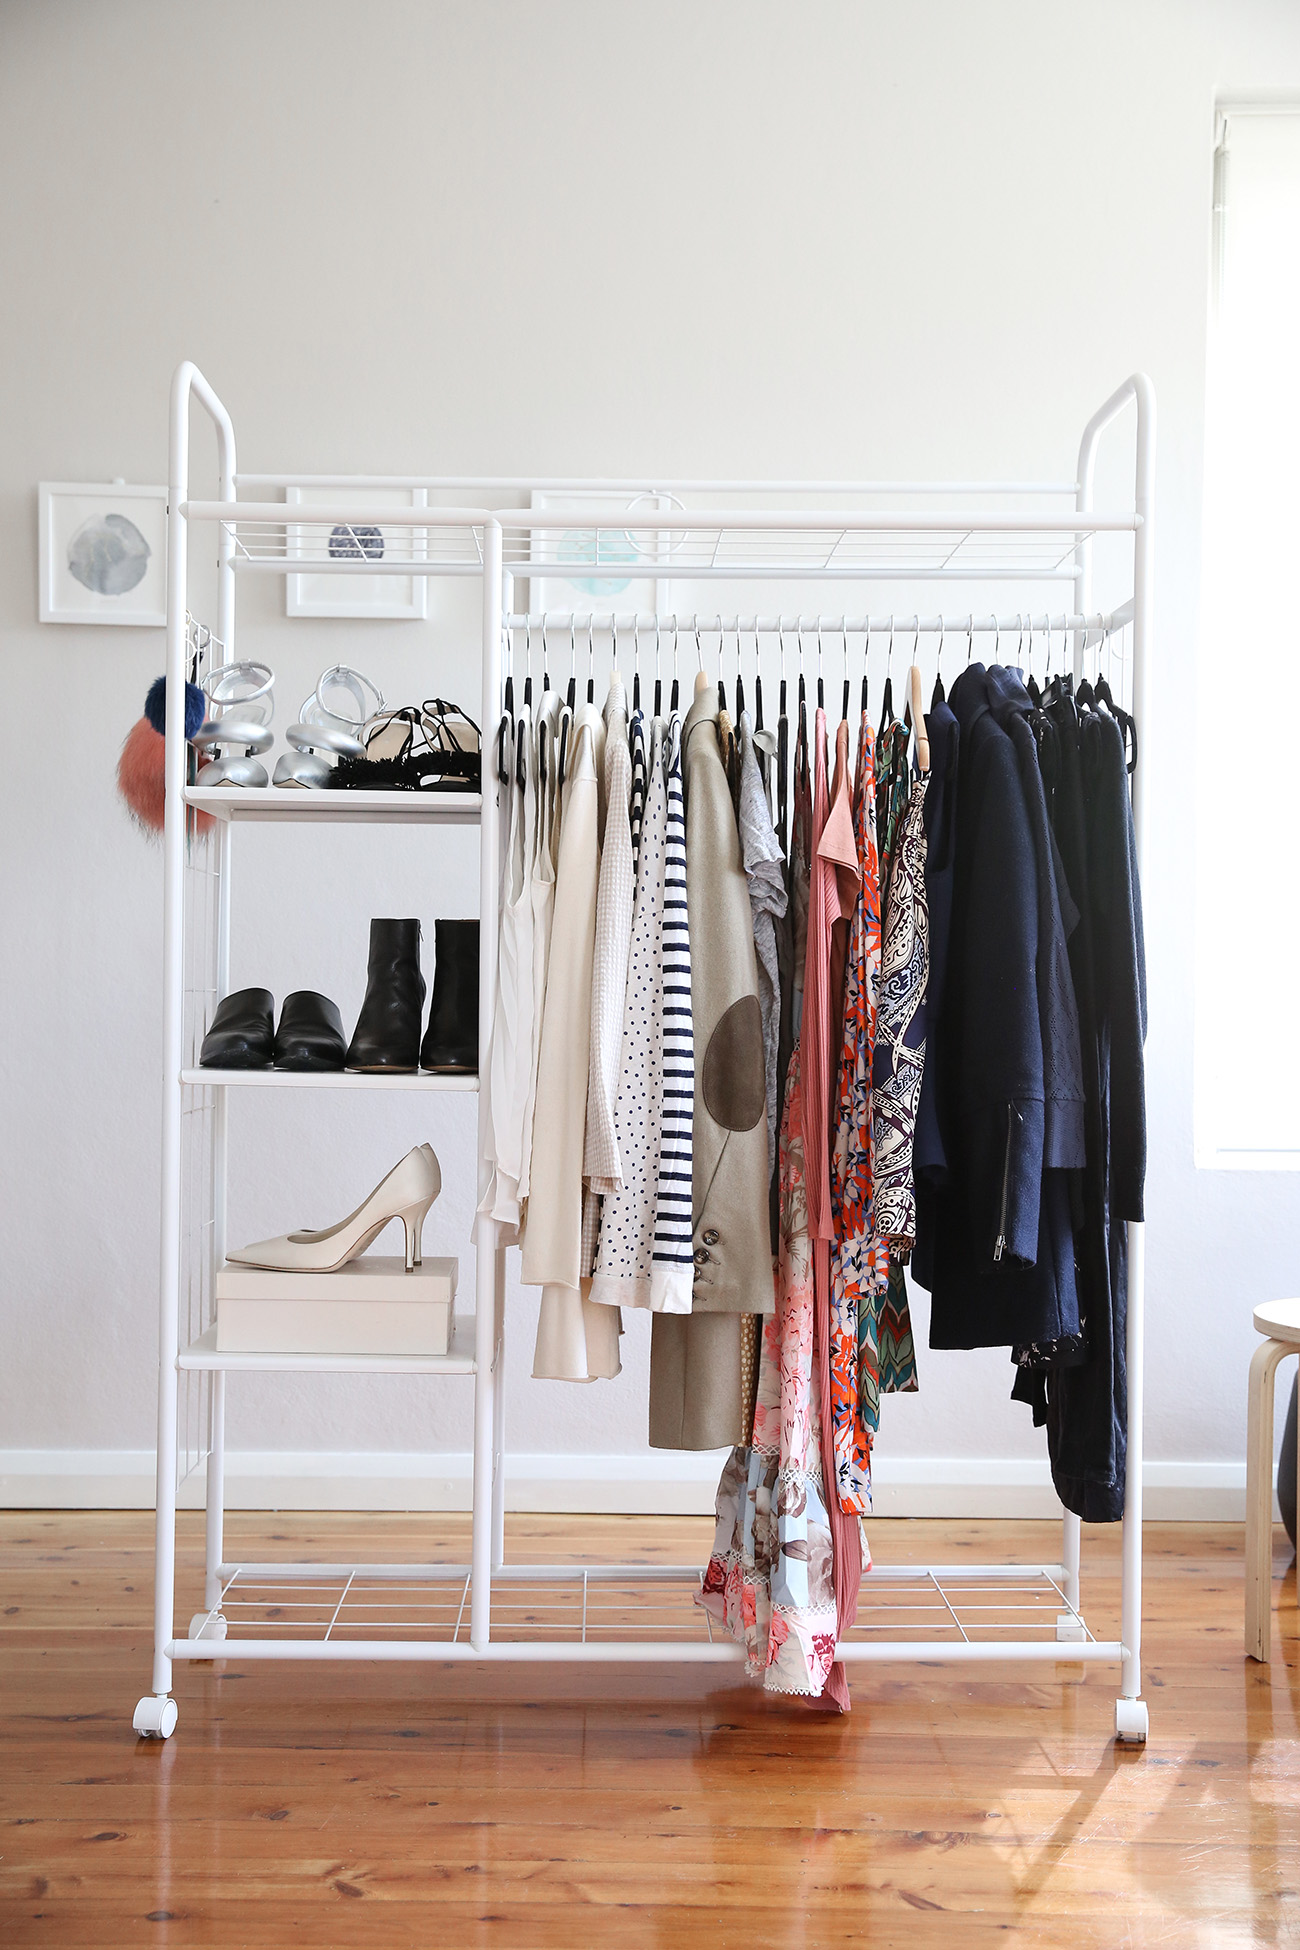 Minimalist Closet: A Minimalist Fashion Blog